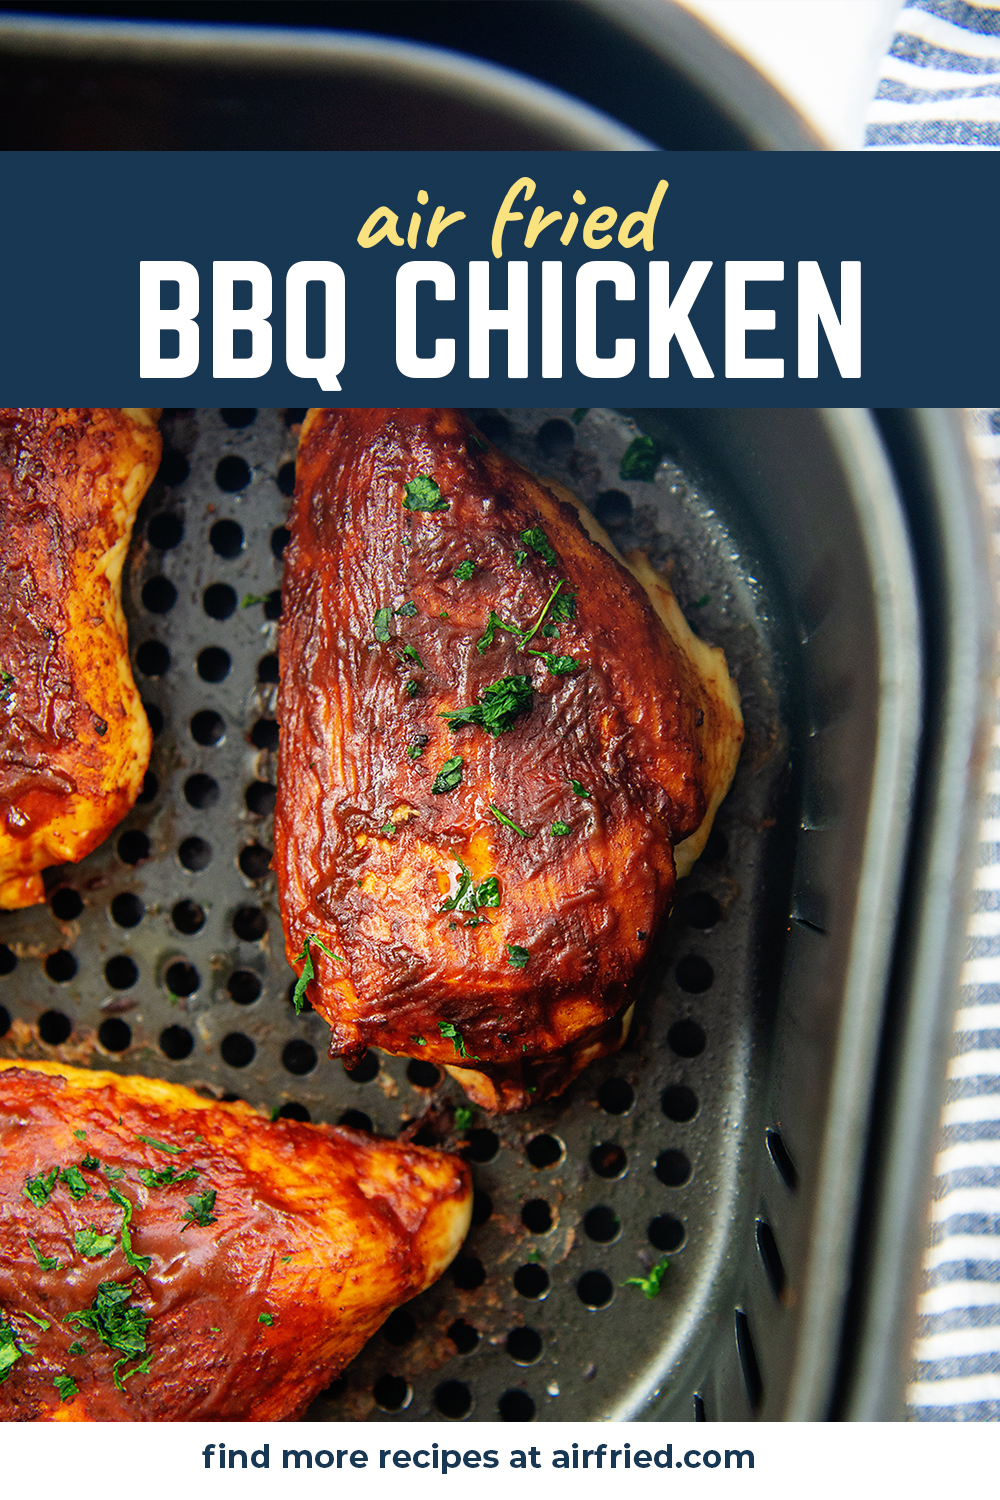 We used our air fryer to make this tasty BBQ chicken.  We loved the taste, the texture, and the clean up.